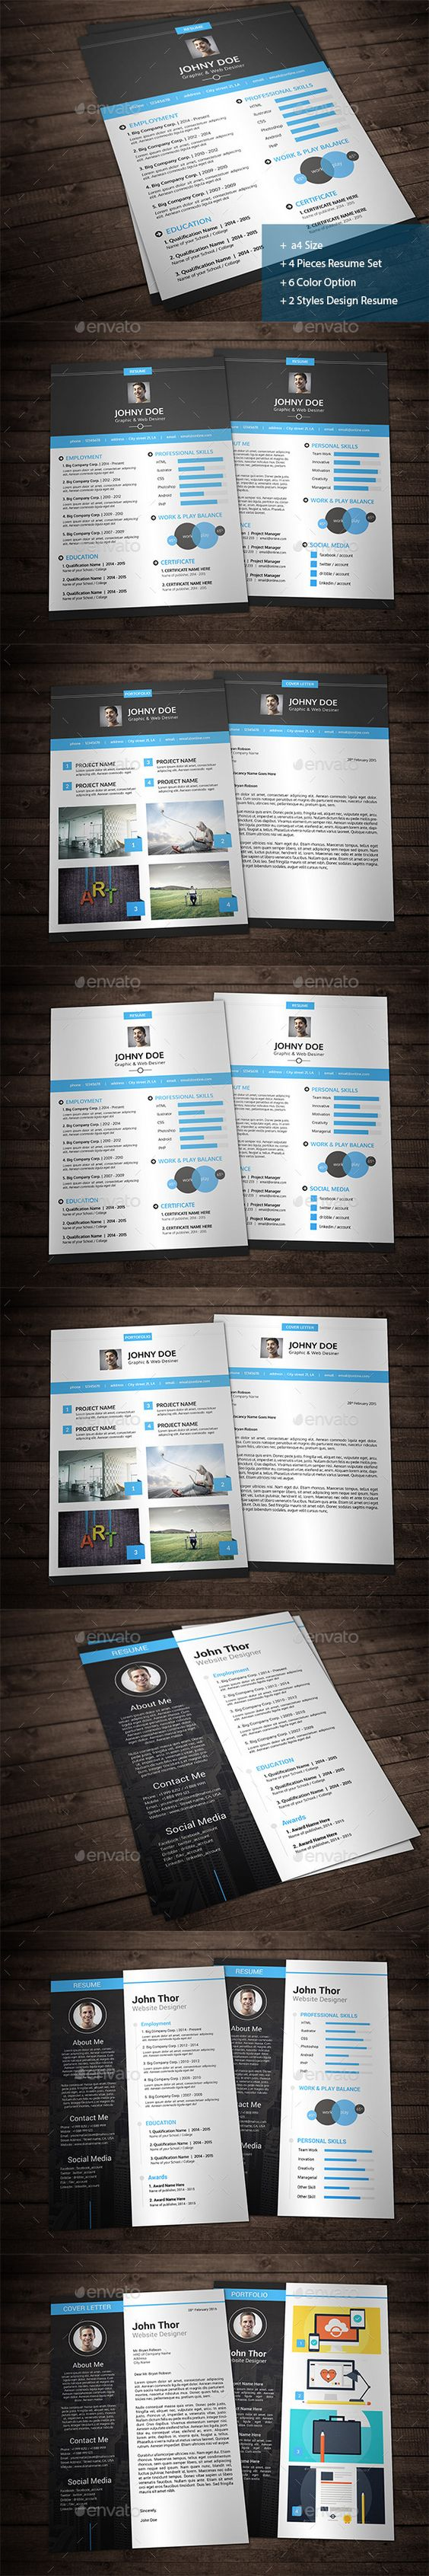 A Resume Template%0A Resume is a one page  beautiful and creative resume template  it u    s a fusion  of u        Nulled Com   Pinterest   Creative cv template  Creative cv and  Creative